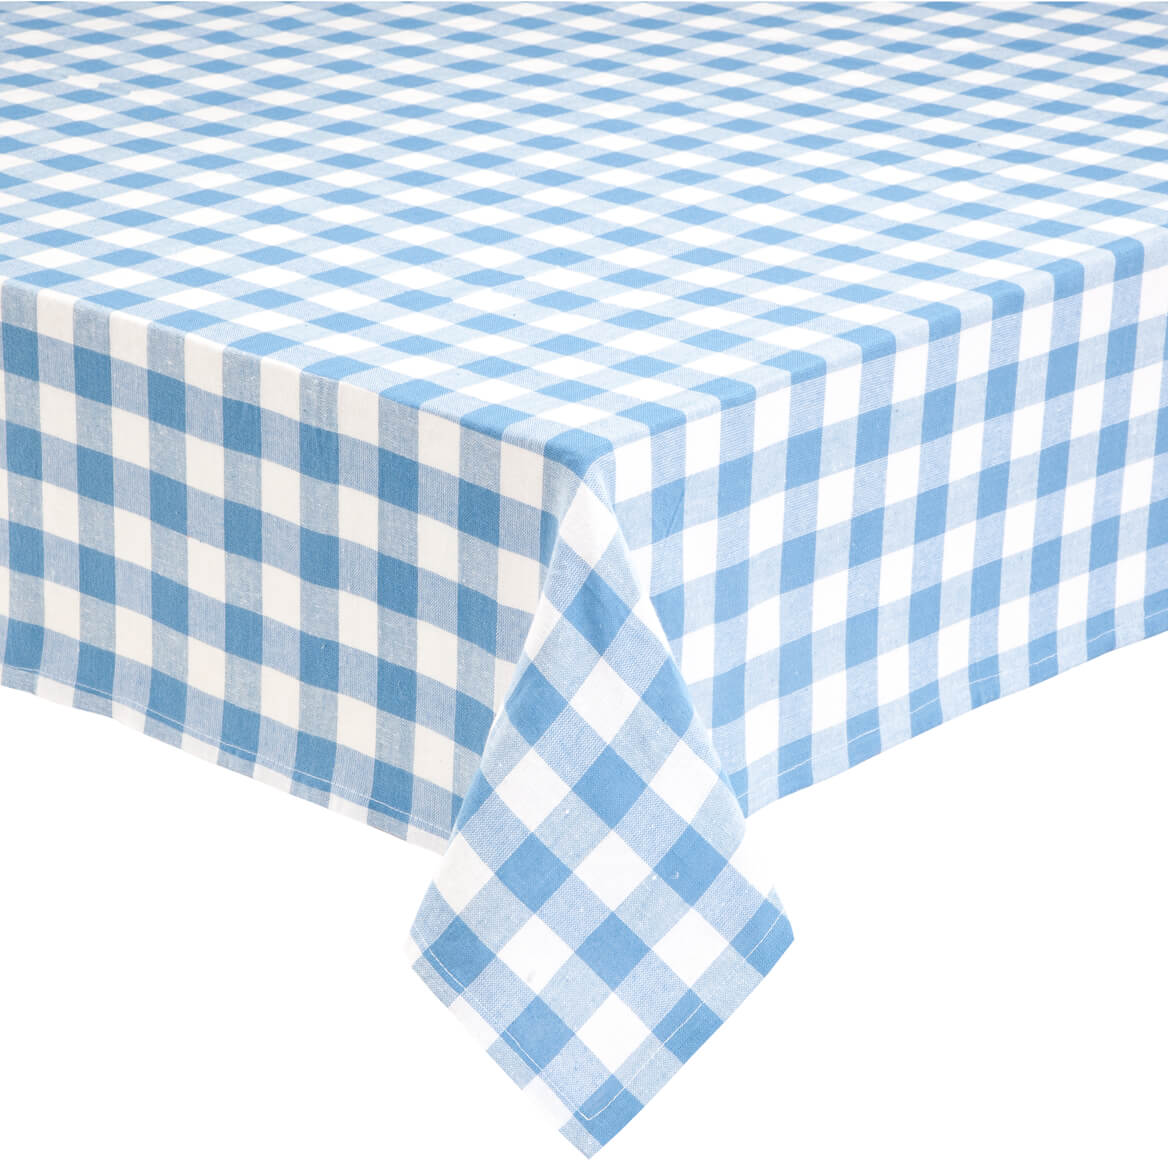 Captivating 100% Cotton Gingham Tablecloth 359112